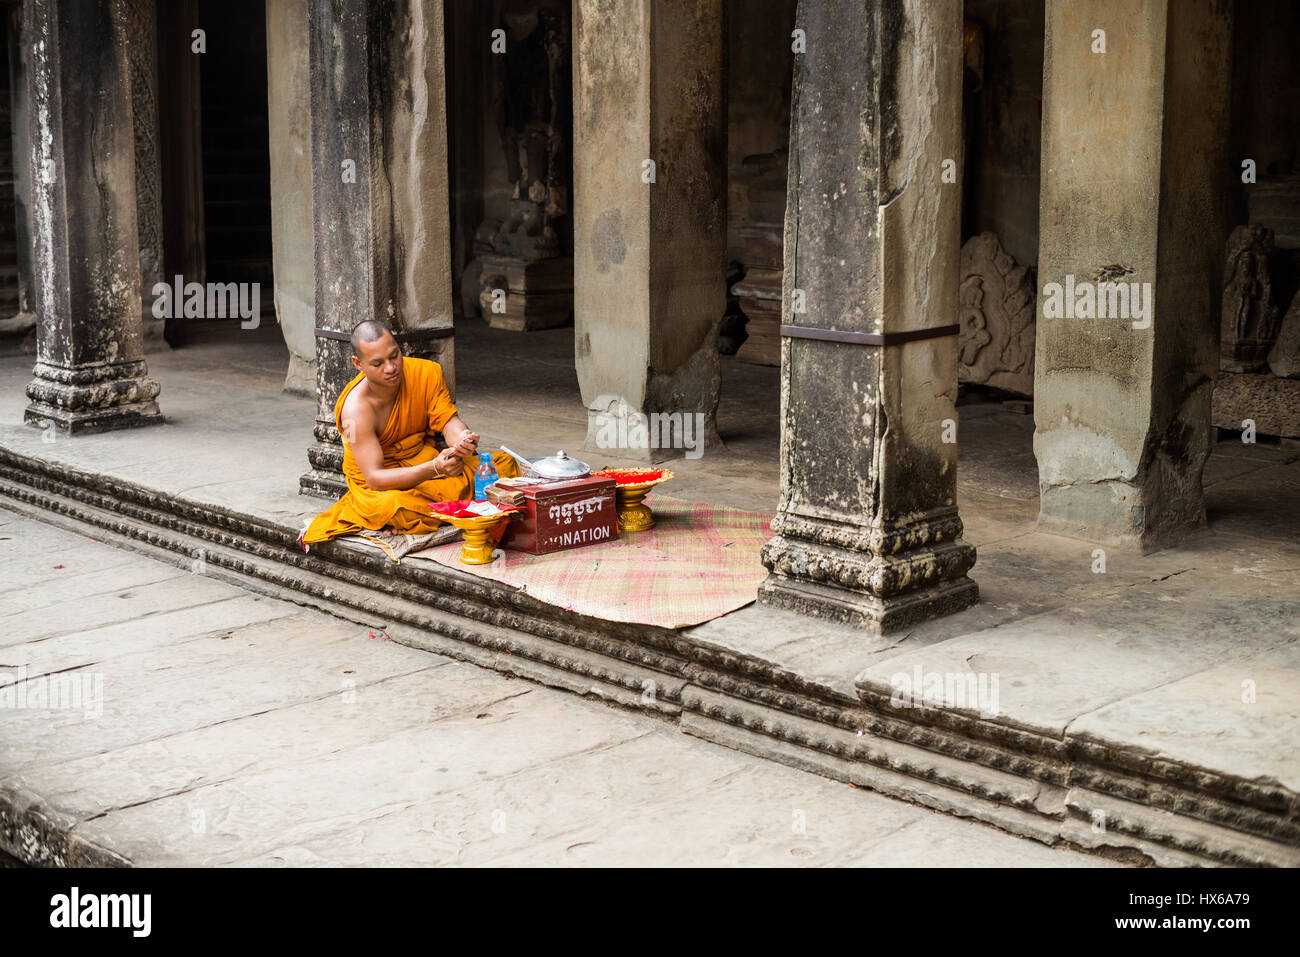 Monk in the Angkor Wat temple, Angkor, Cambodia, Asia - Stock Image